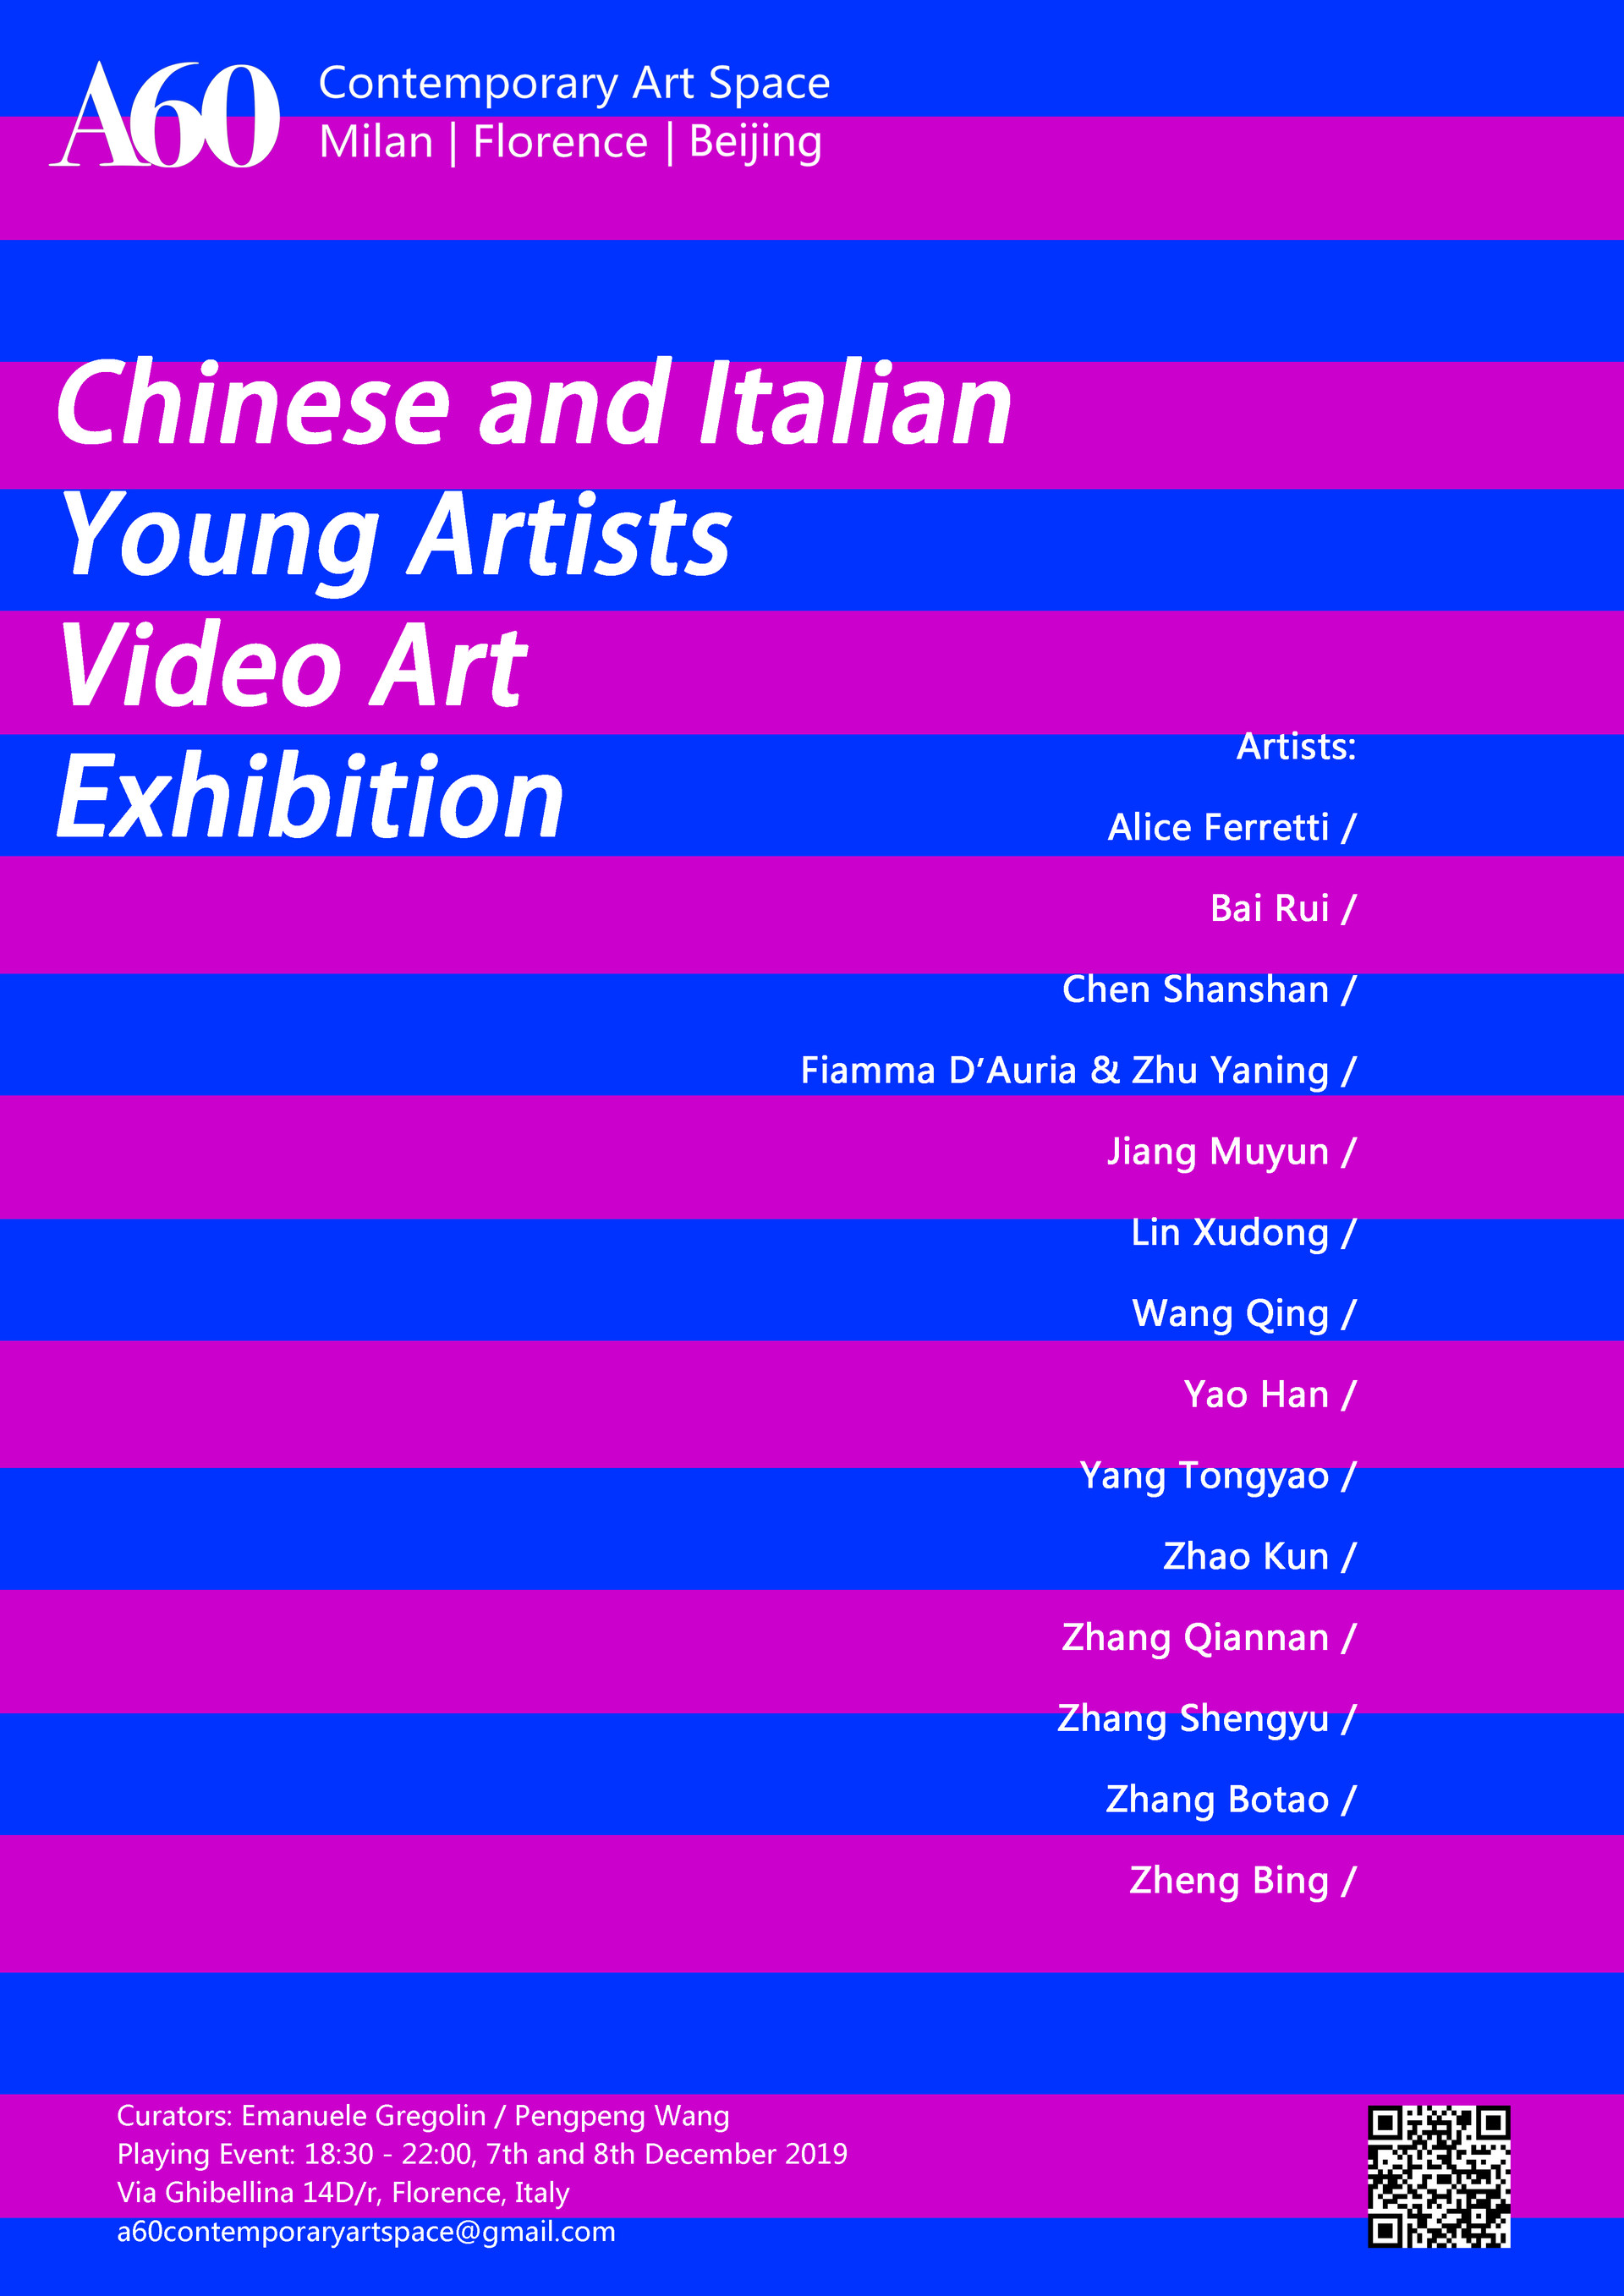 Chinese and Italian Young Artists Video Art Exhibition